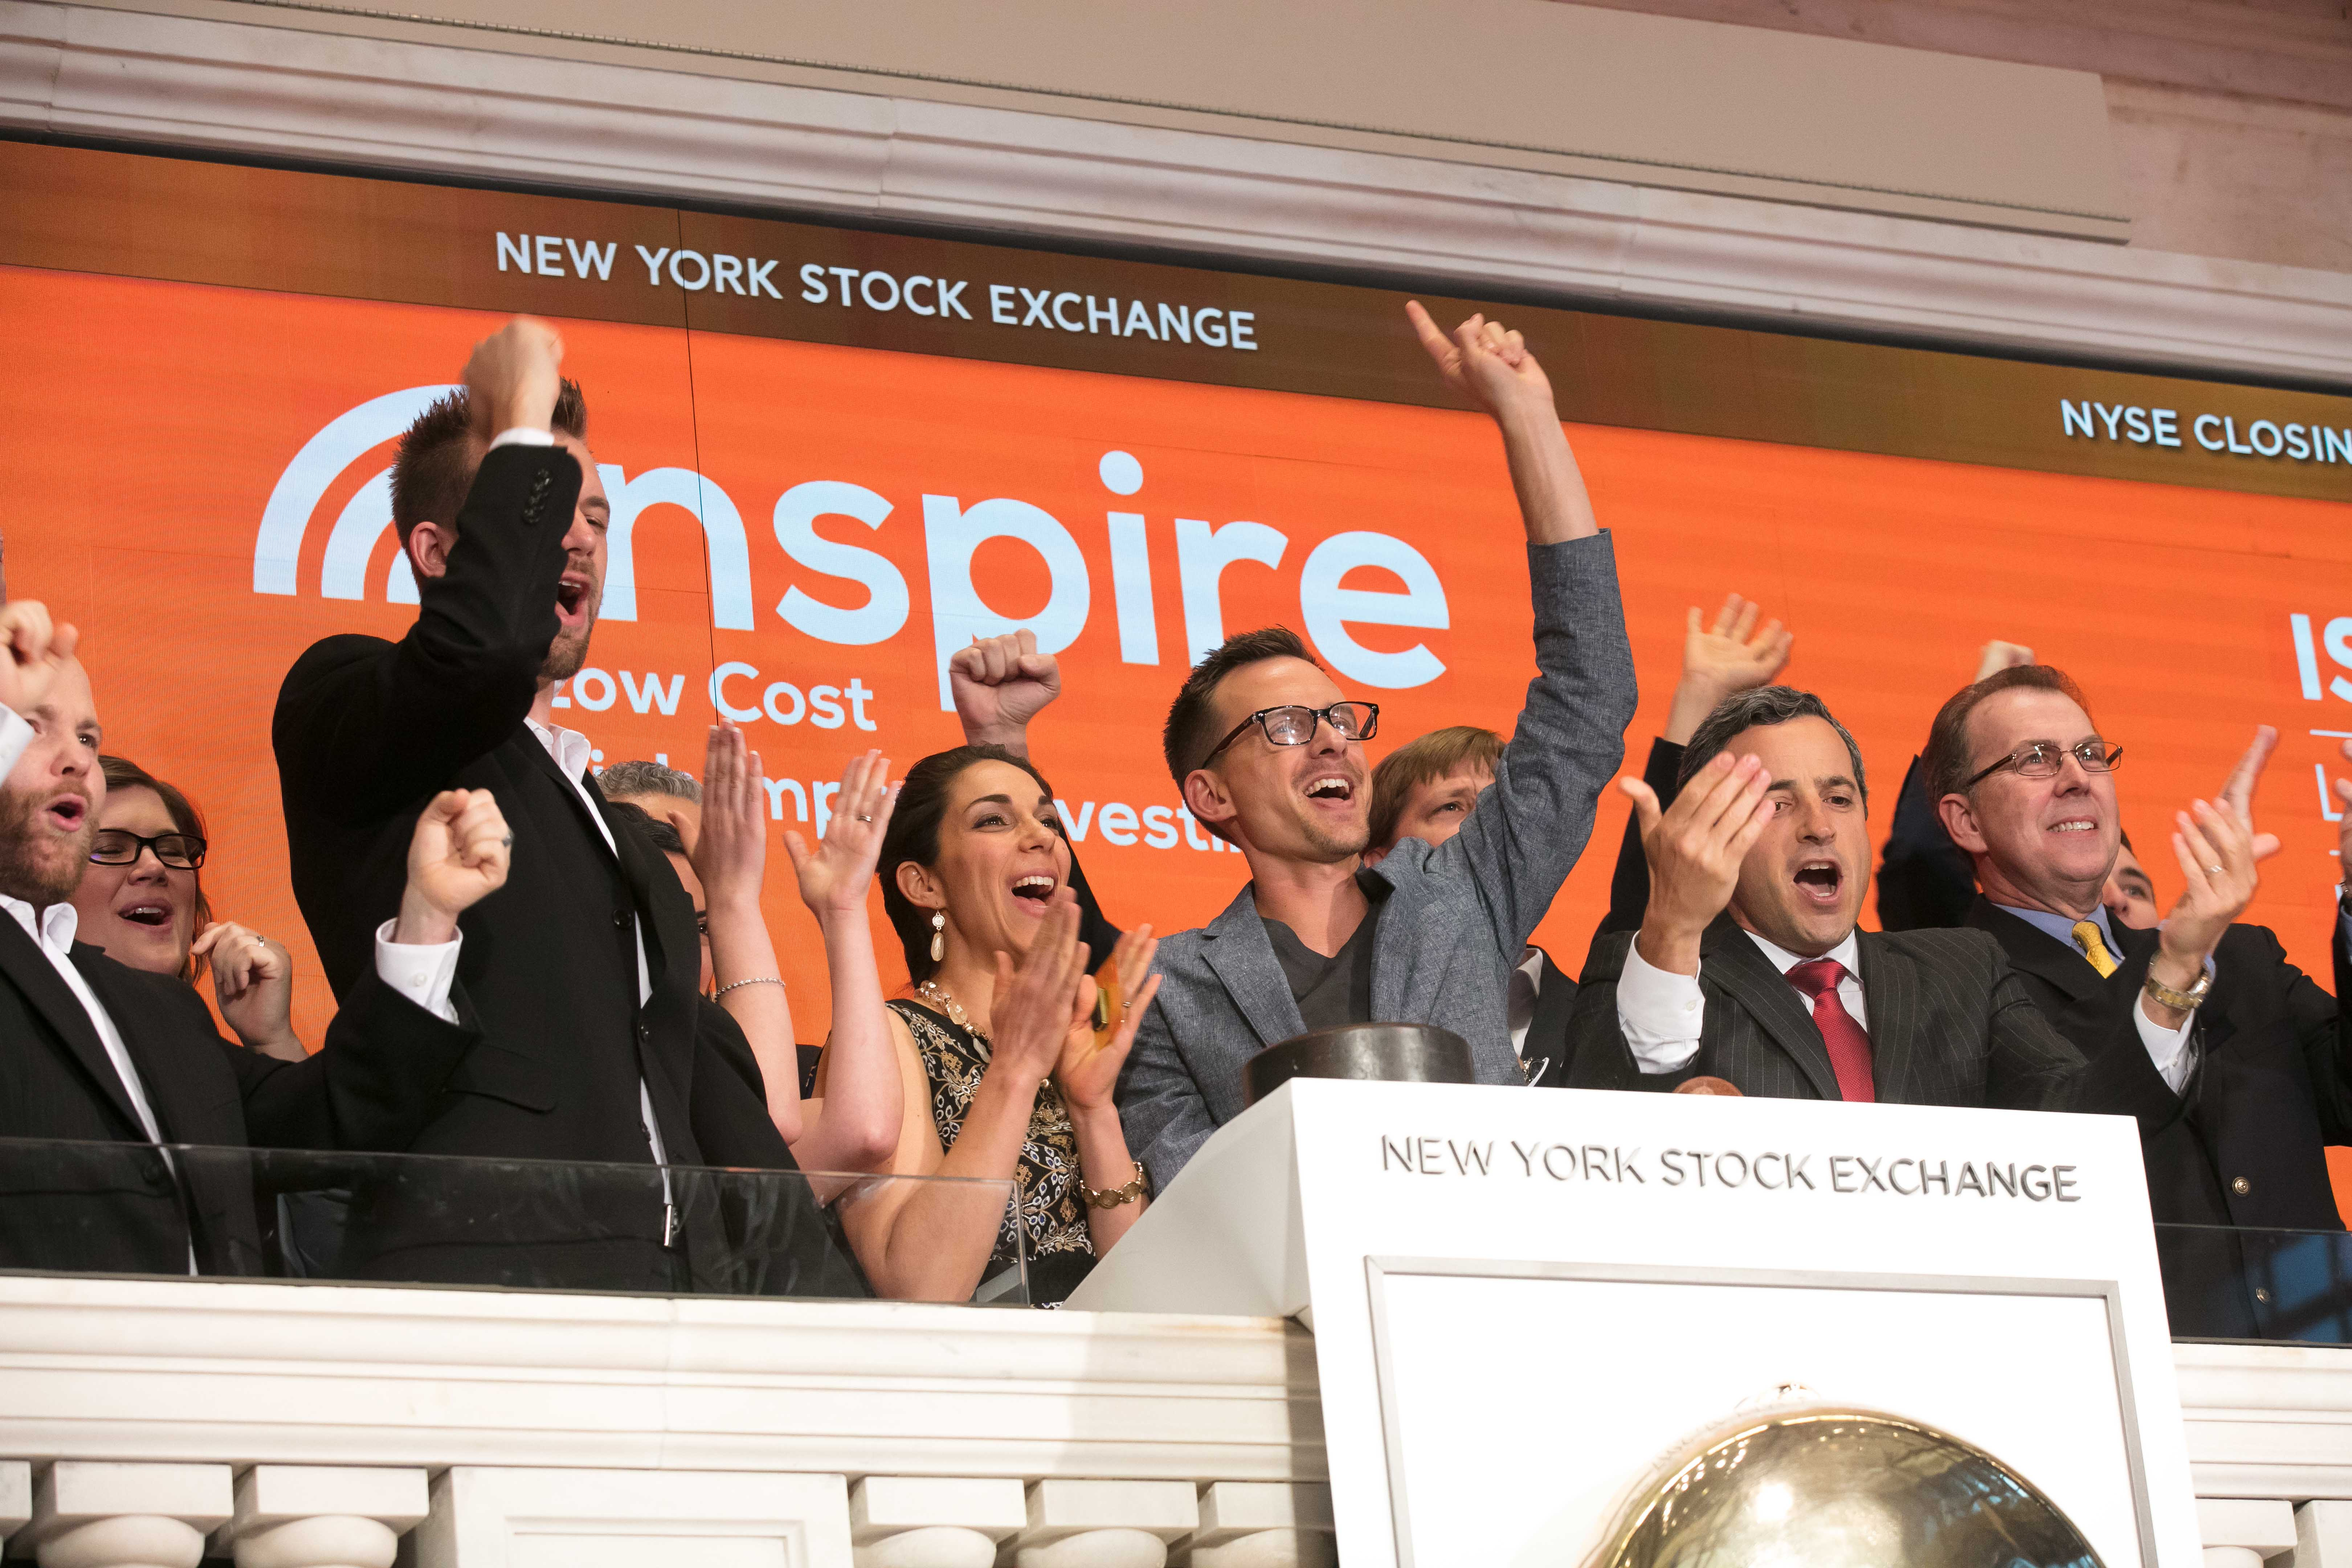 Ringing The NYSE Closing Bell: One Year Later